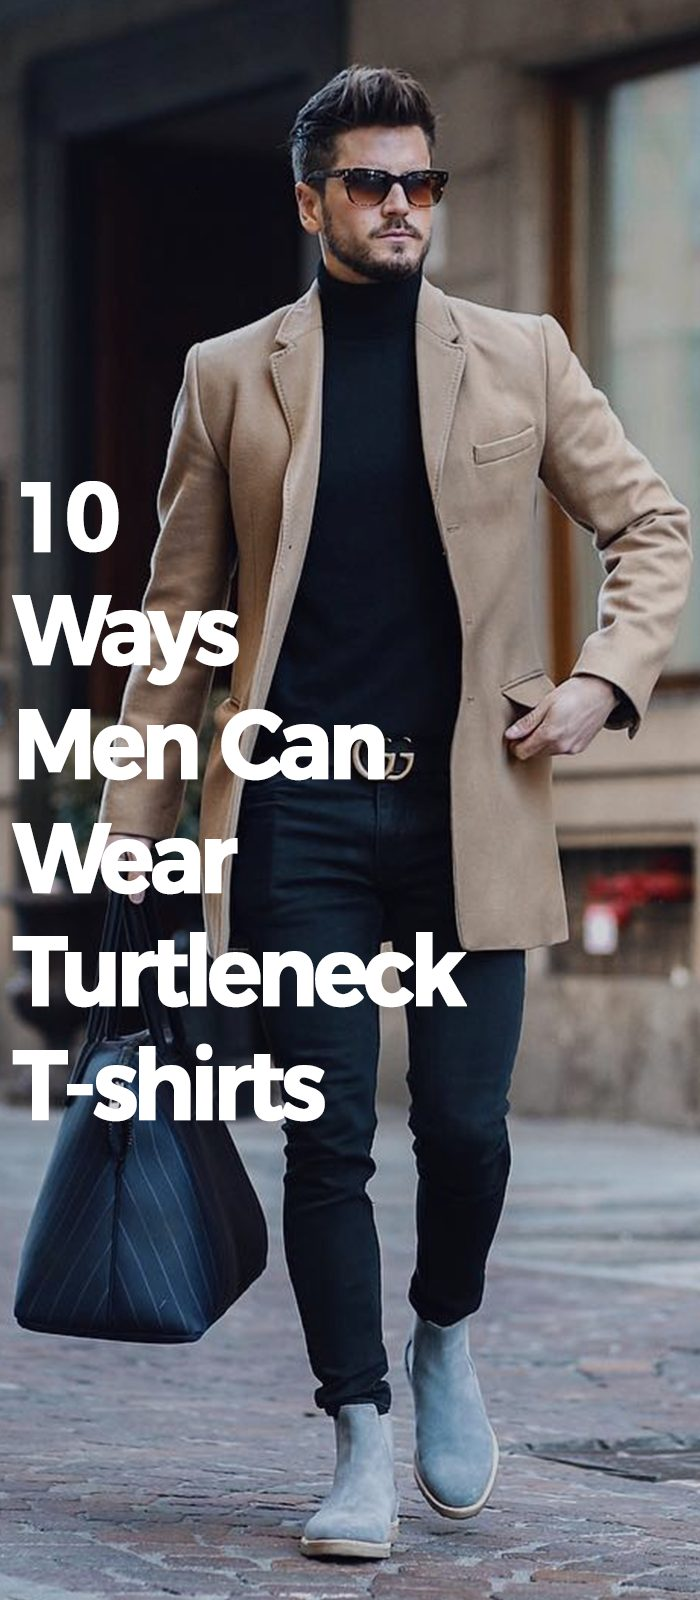 10 Ways Men Can Wear Turtleneck T-shirts.